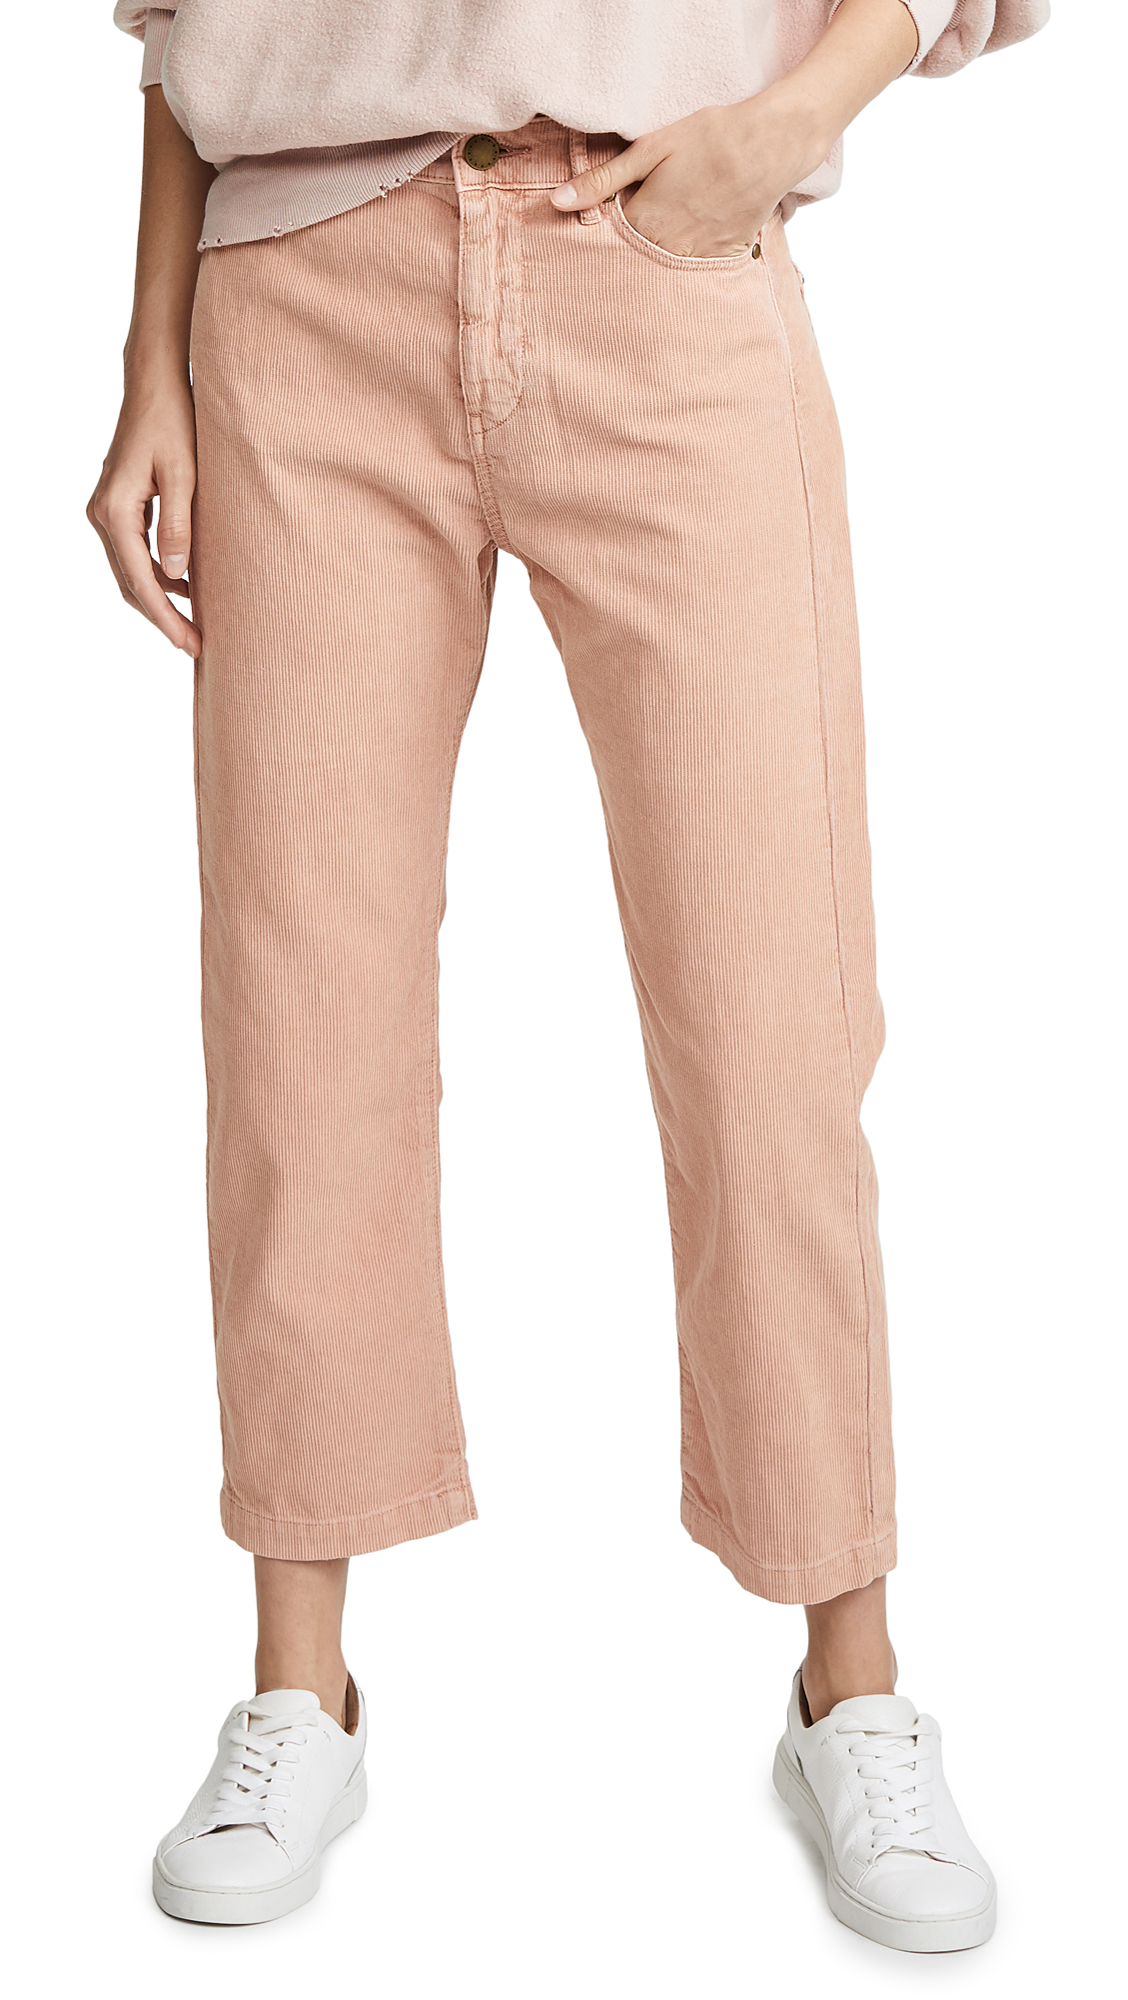 THE GREAT THE RAMBLER PANTS